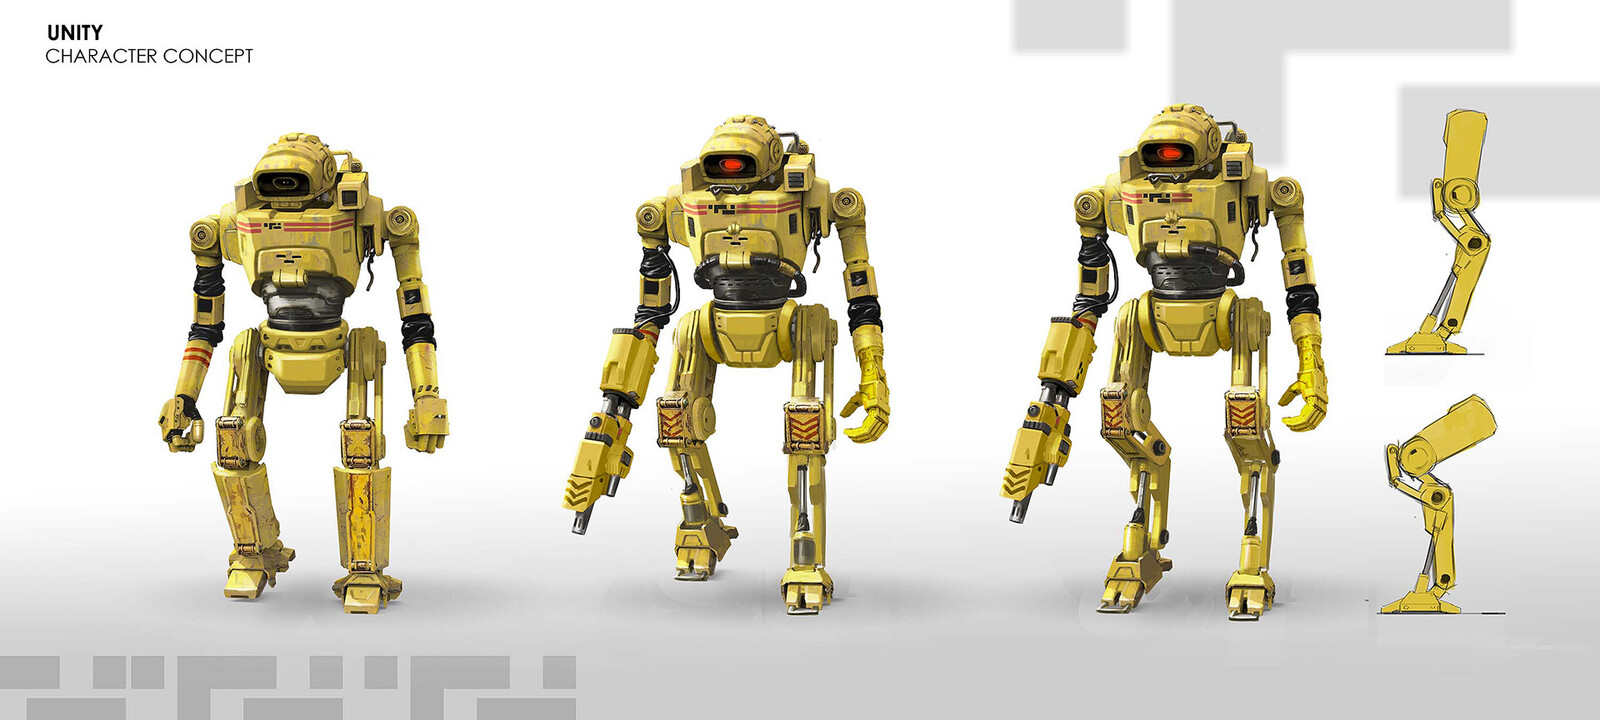 Unity game character concept